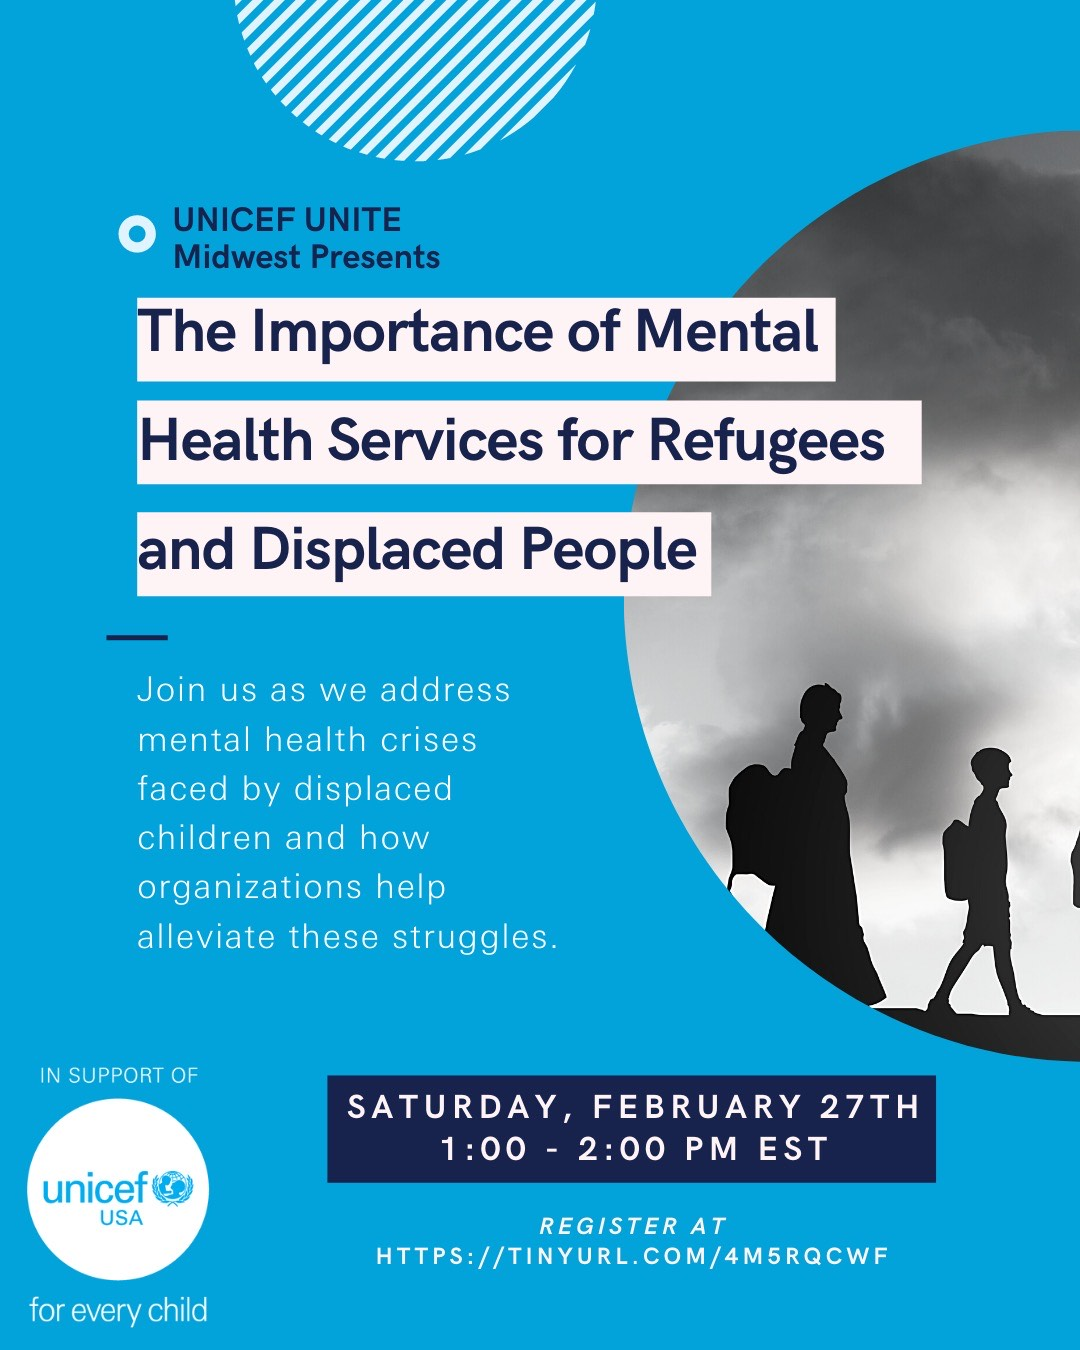 UNICEF UNITE Presents: The Importance of Mental Health Services for Refugees and other Displaced People